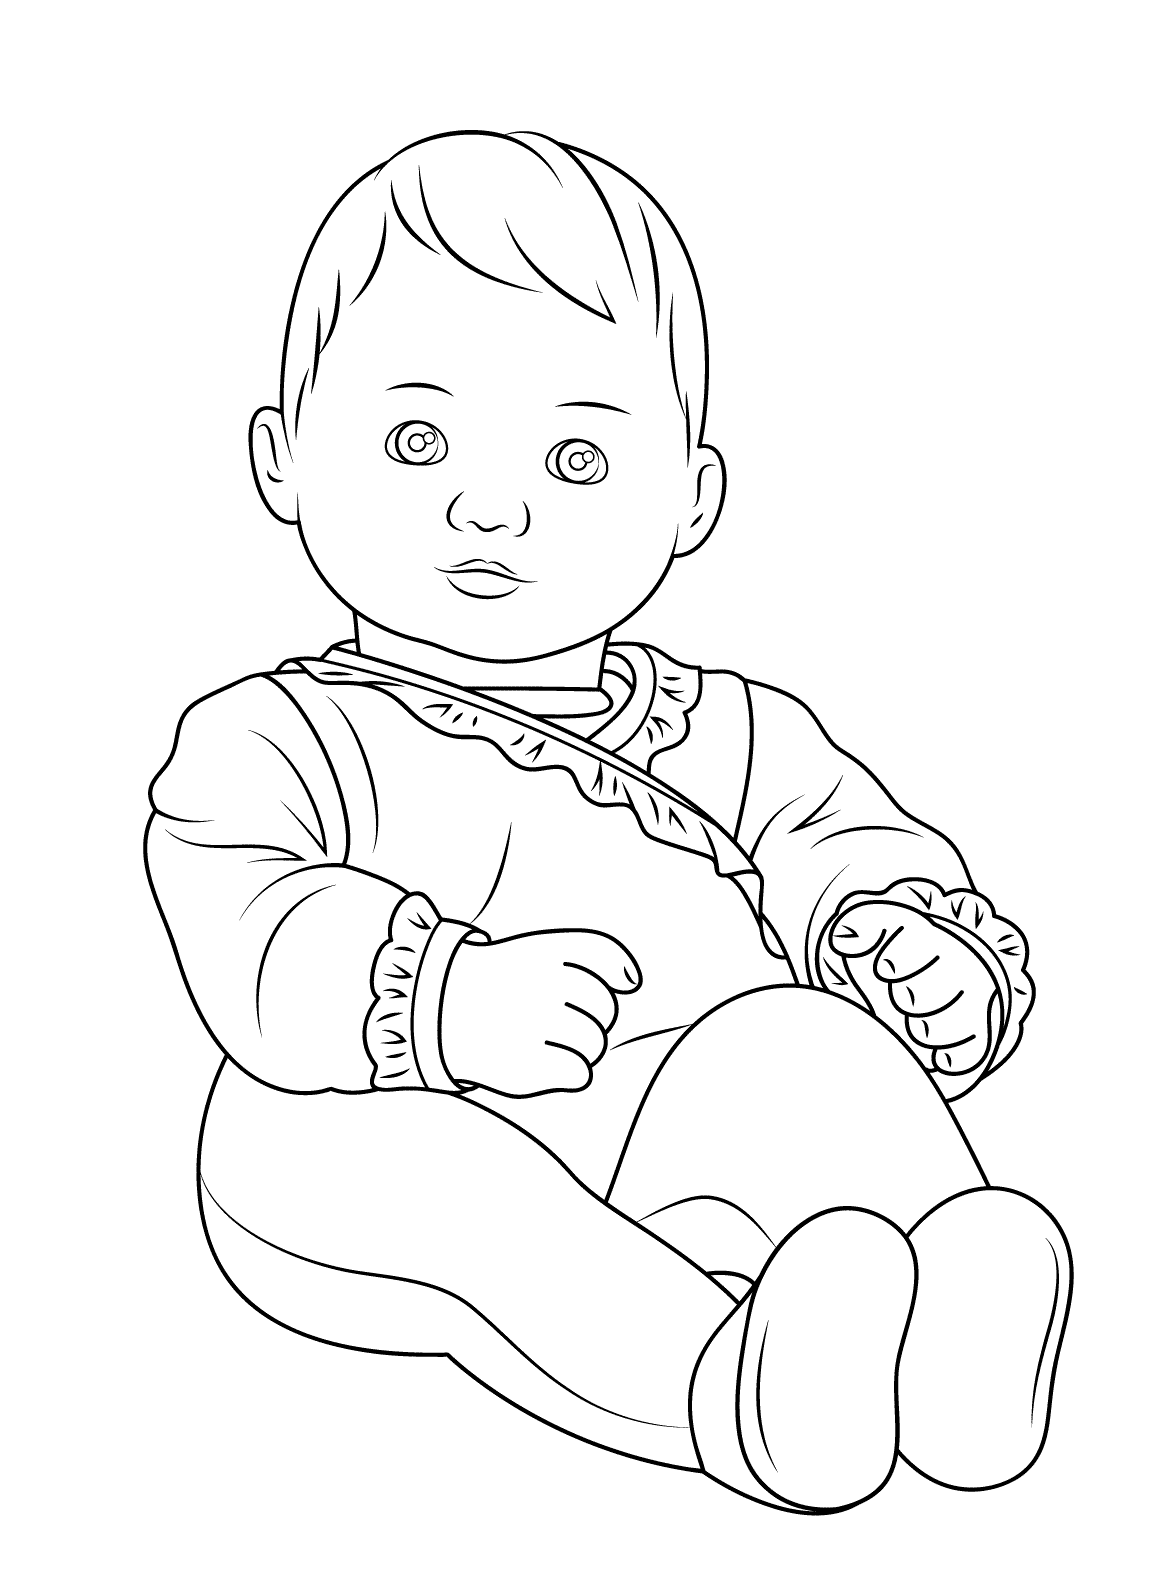 baby pictures coloring pages free printable baby coloring pages for kids coloring baby pictures pages